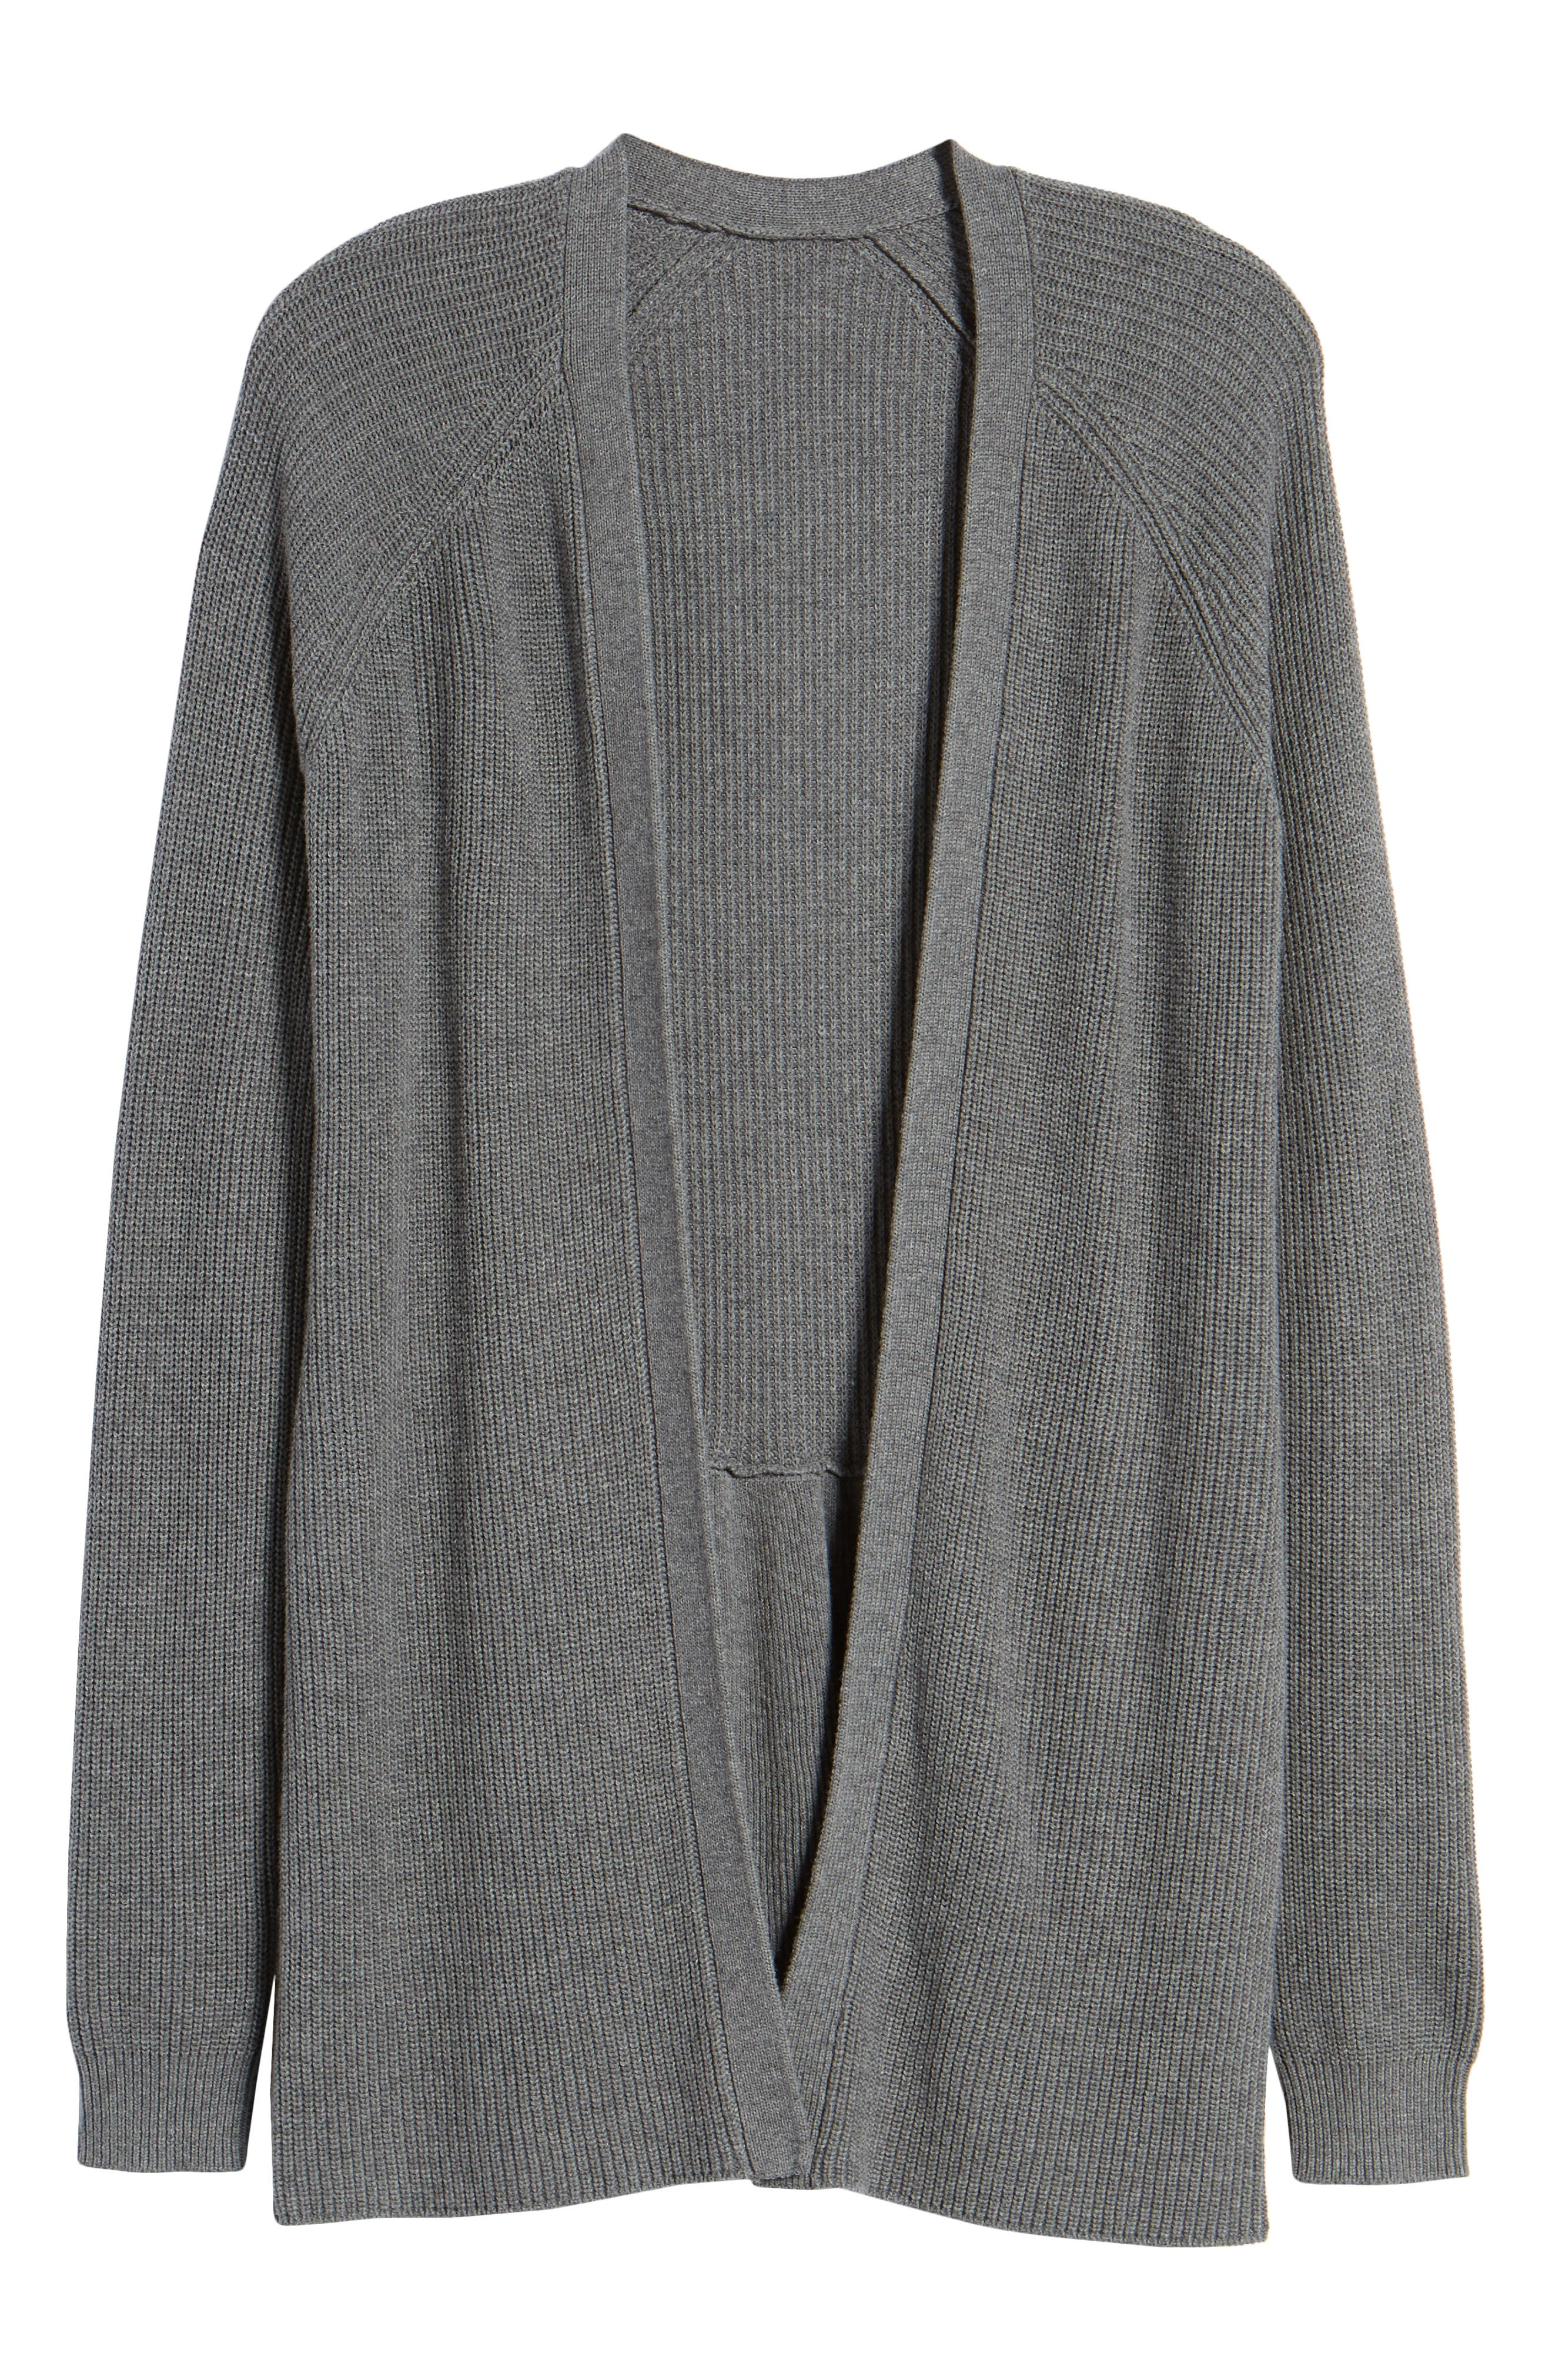 Ruffle Cardigan,                             Alternate thumbnail 7, color,                             Grey Dark Heather